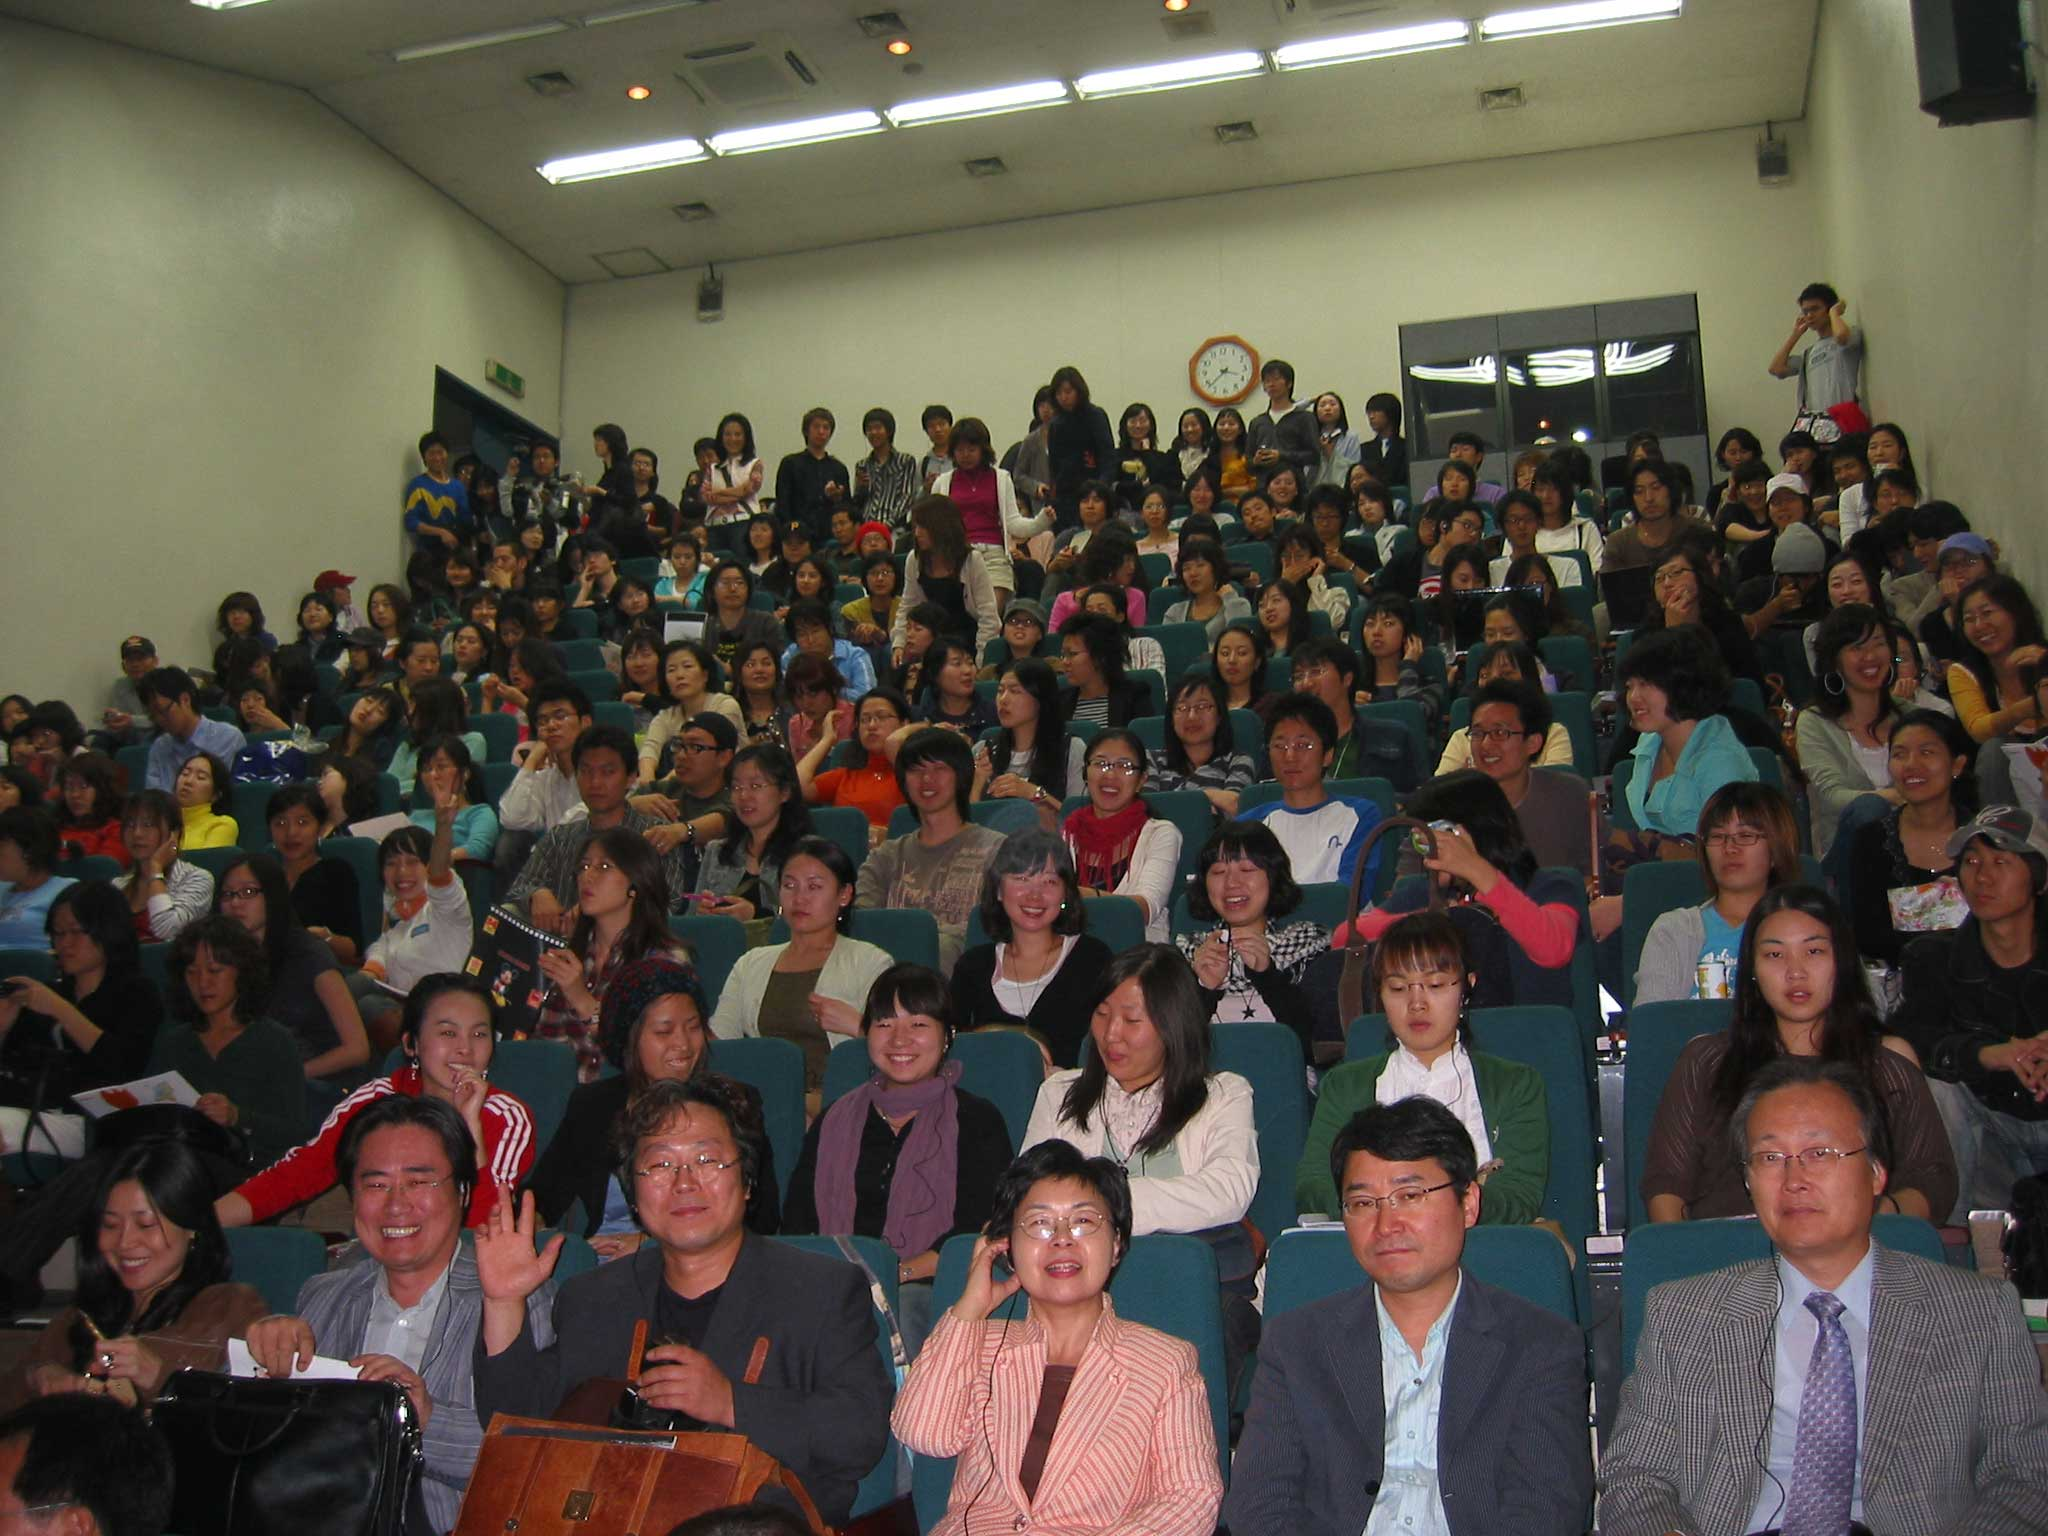 HongIk University audience at Rembrandt lecture, 13 September 2006